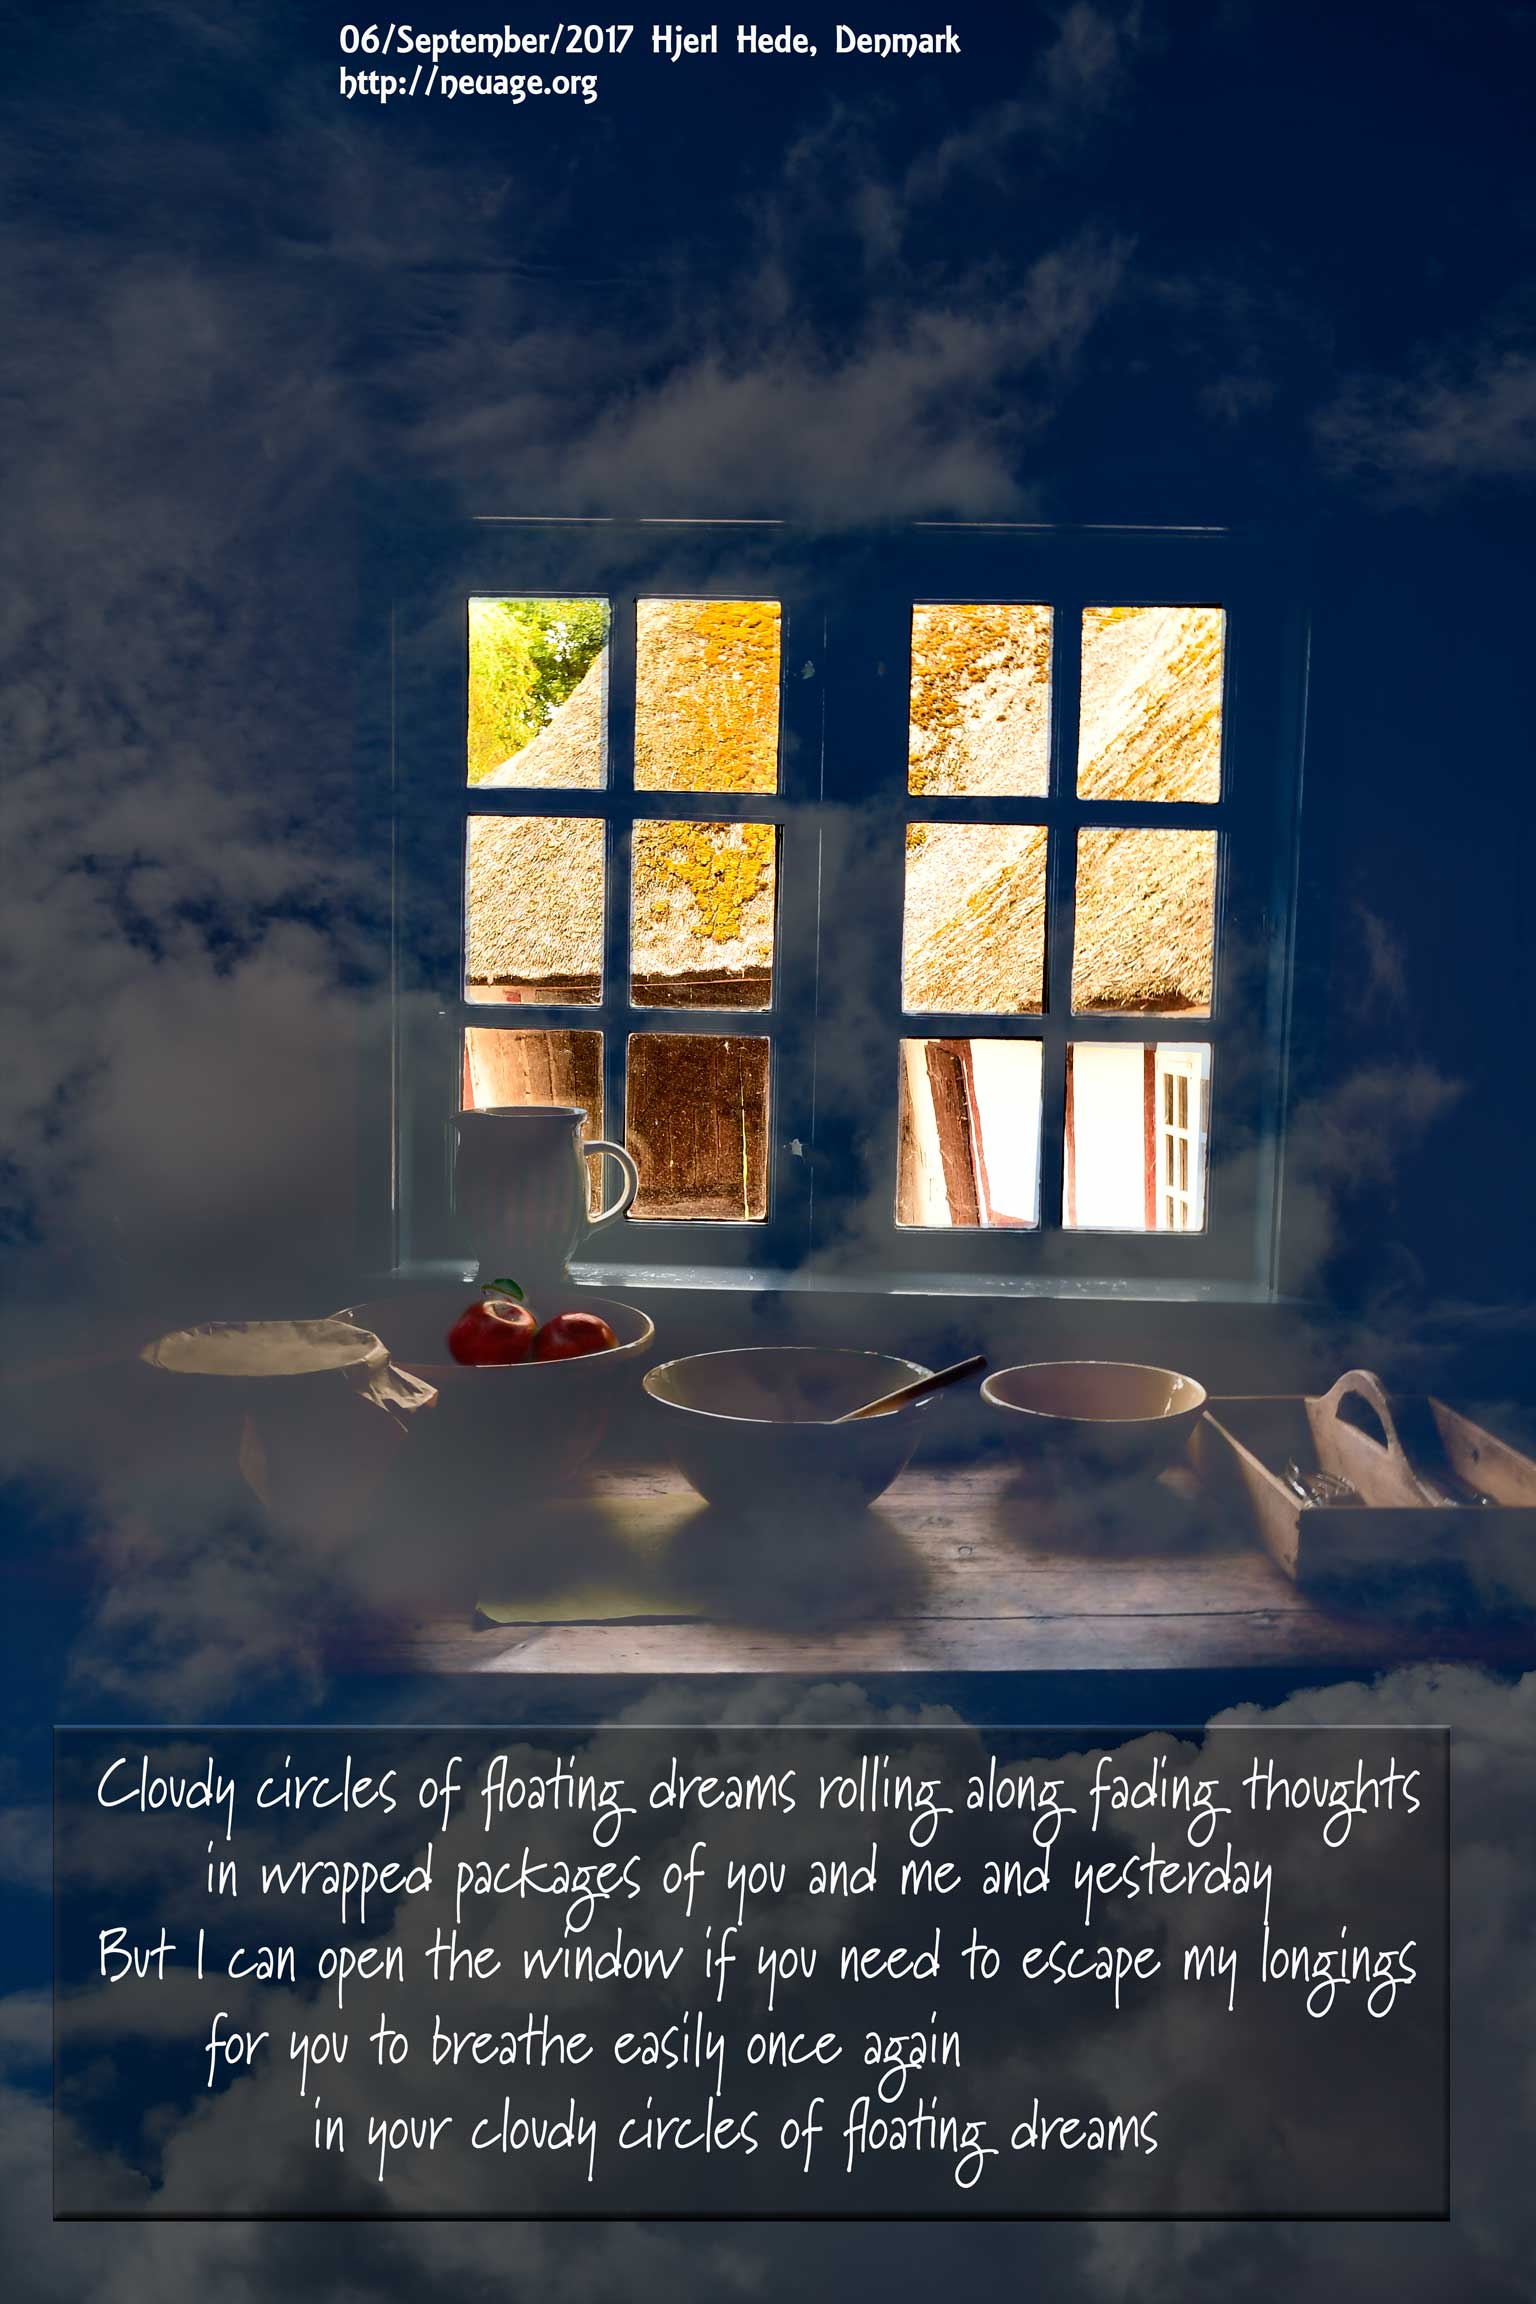 Cloudy circles of floating dreams rolling along fading thoughts in wrapped packages of I cannot explain But I can open the window if you need to escape my longings so you can breathe easily once again in your cloudy circles of floating dreams